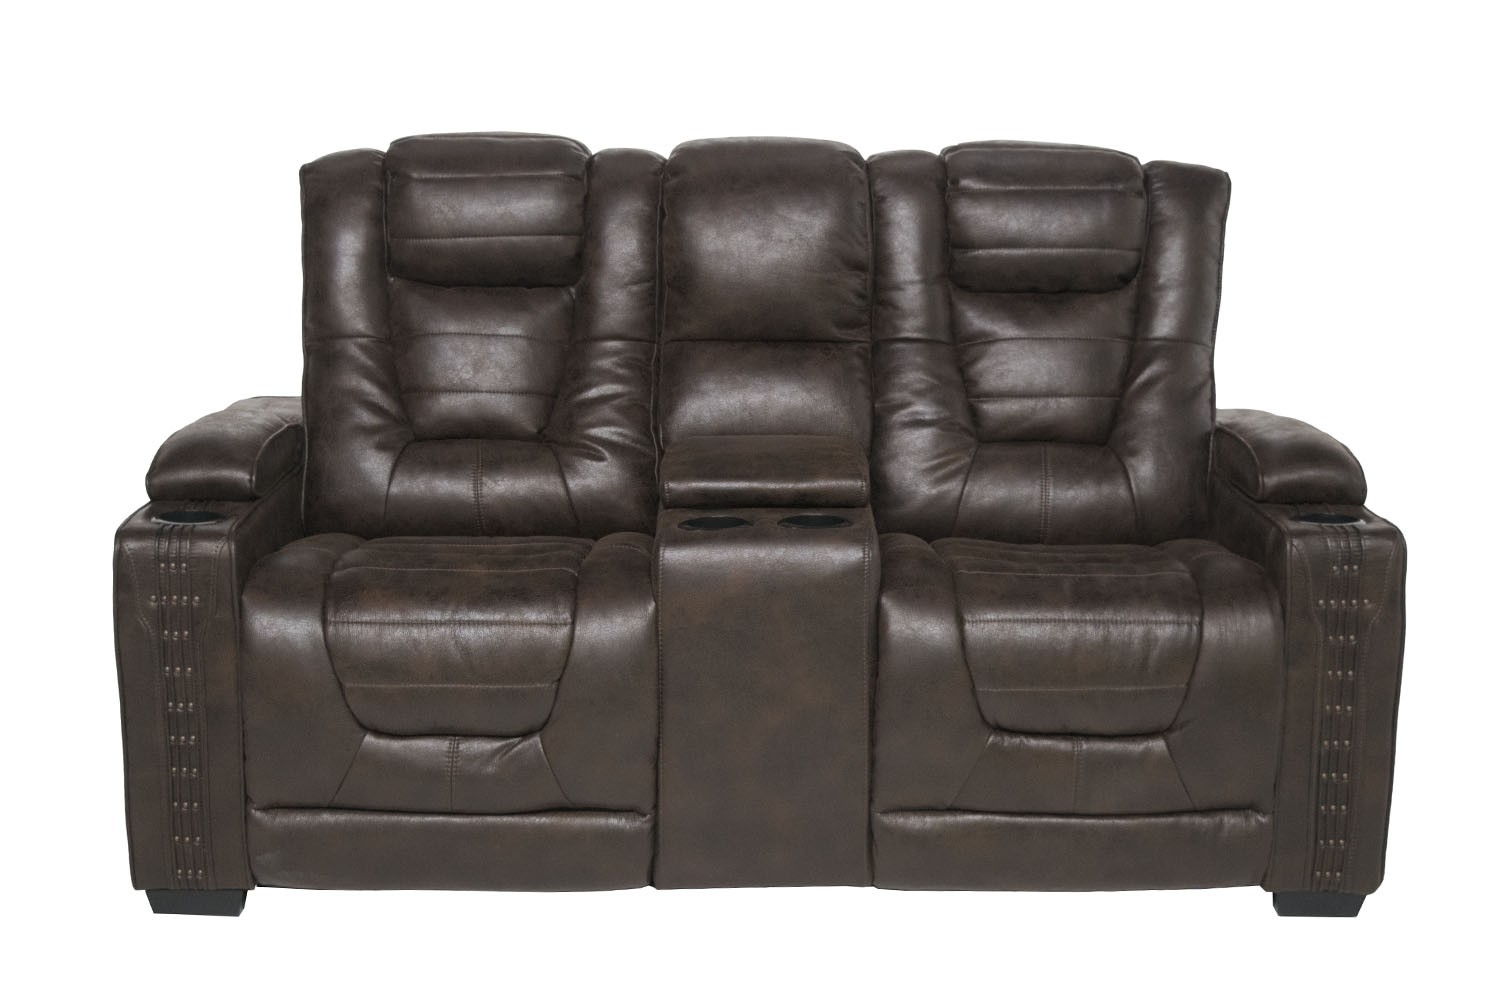 Remarkable Guitar 2 Power Fabric Loveseat In Brown Mor Furniture Uwap Interior Chair Design Uwaporg